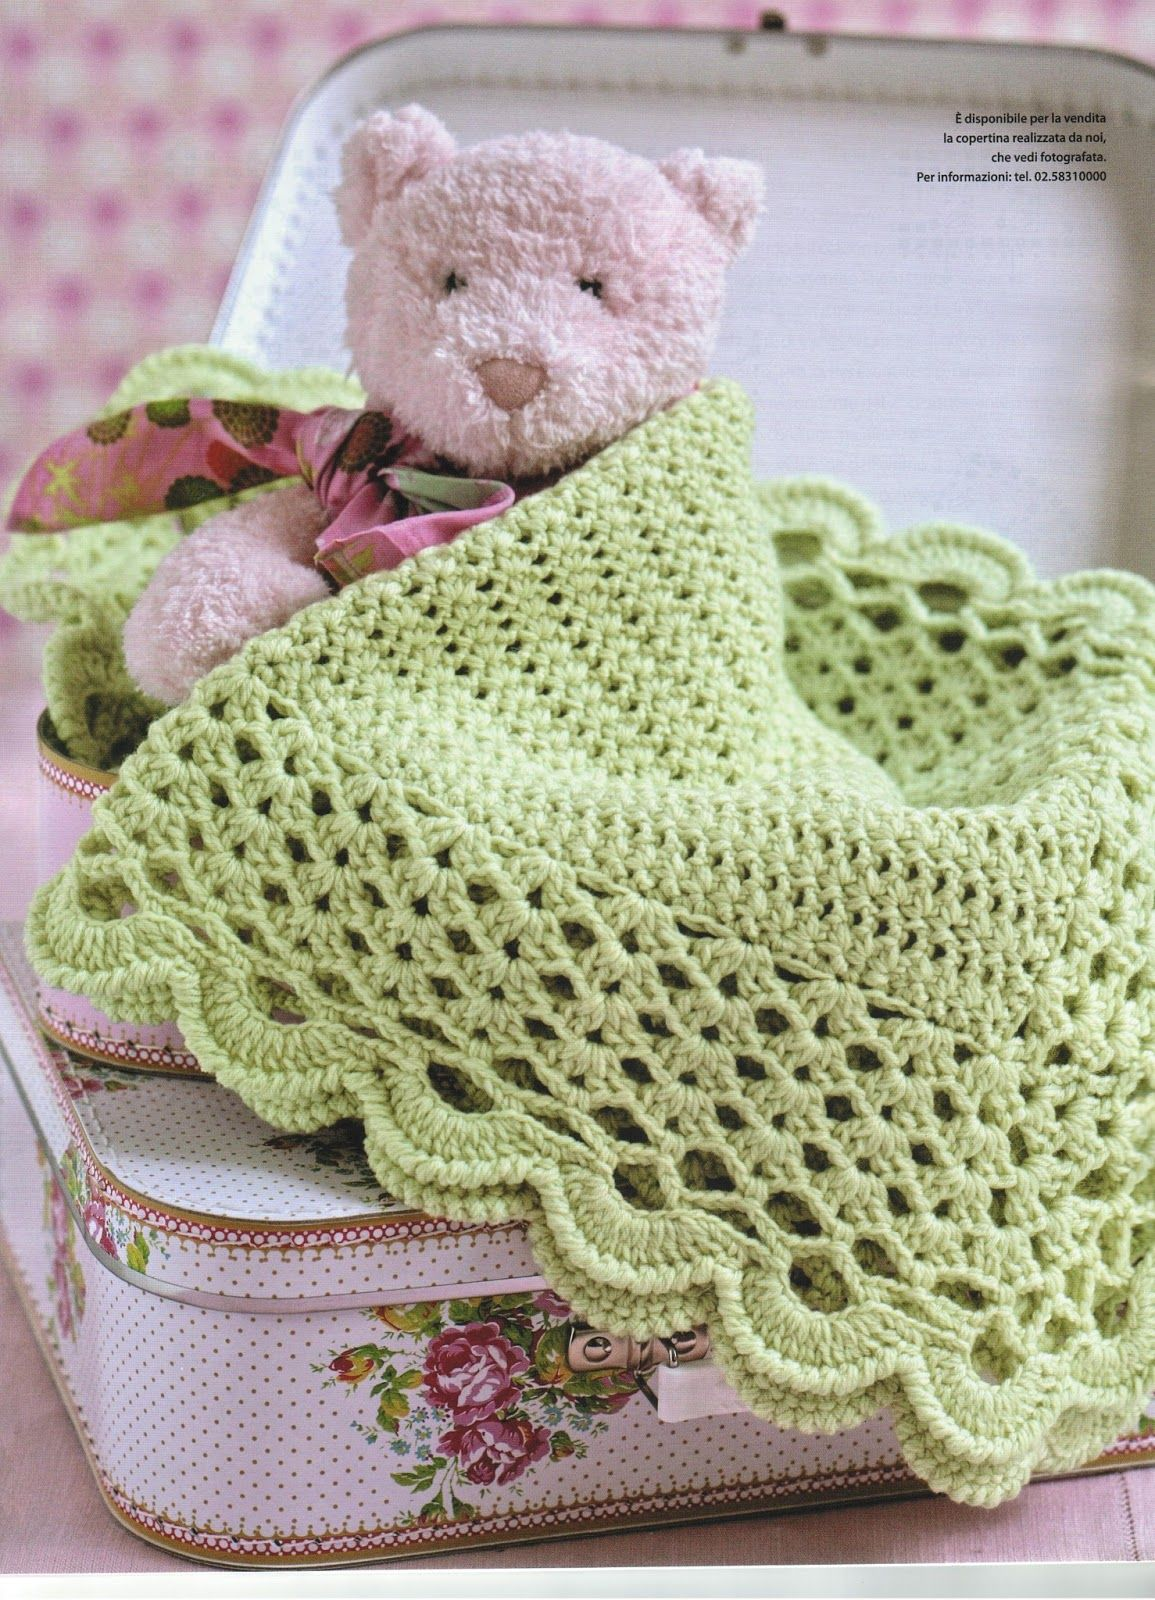 Pin By Elide Barlocco On Copertine Baby Baby Blanket Crochet